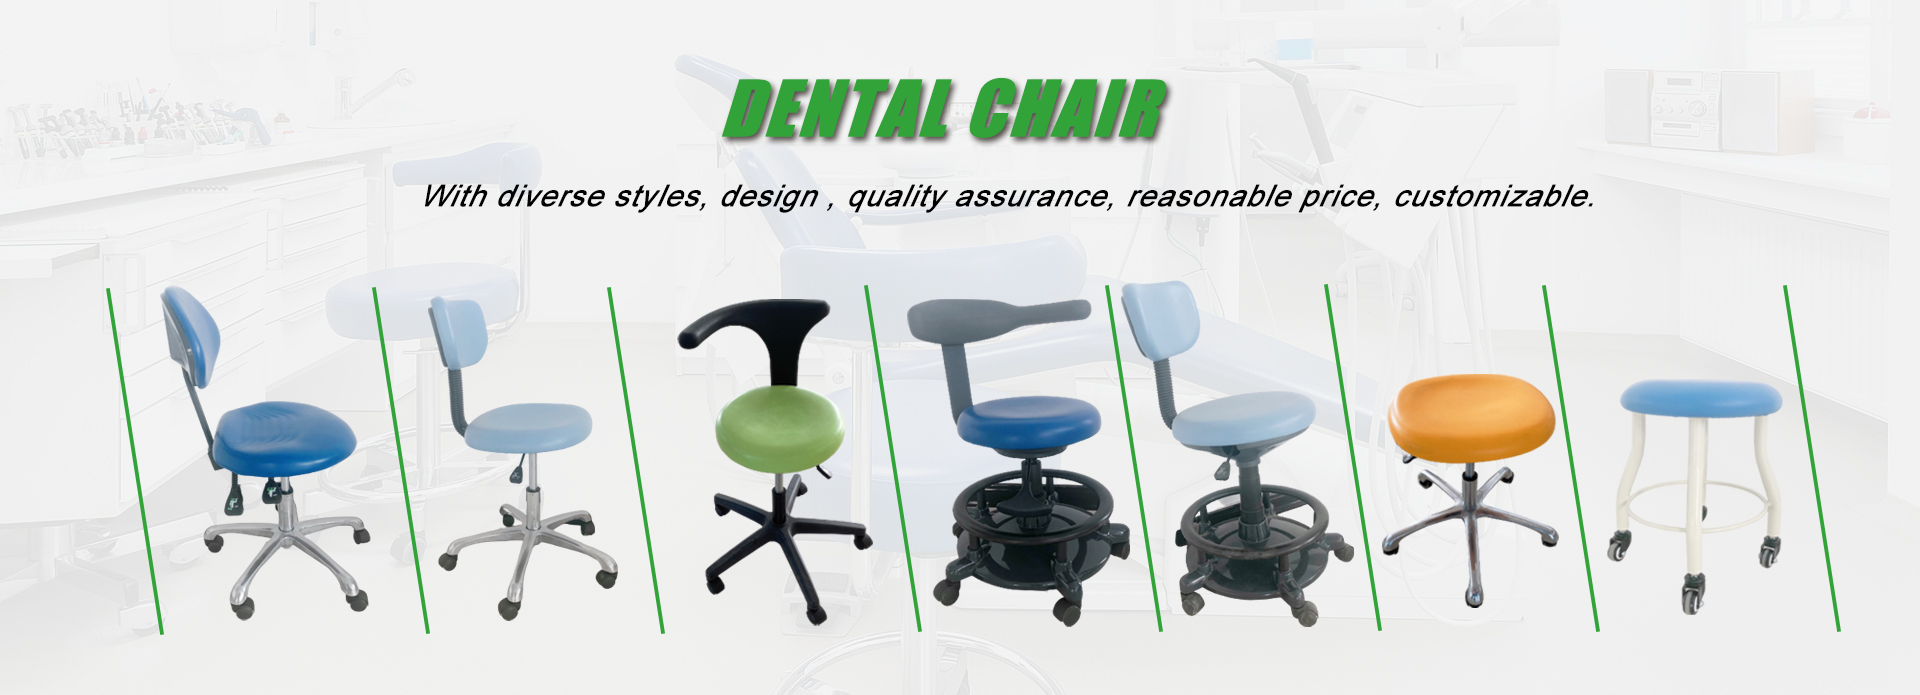 DENTAL CHAIR2